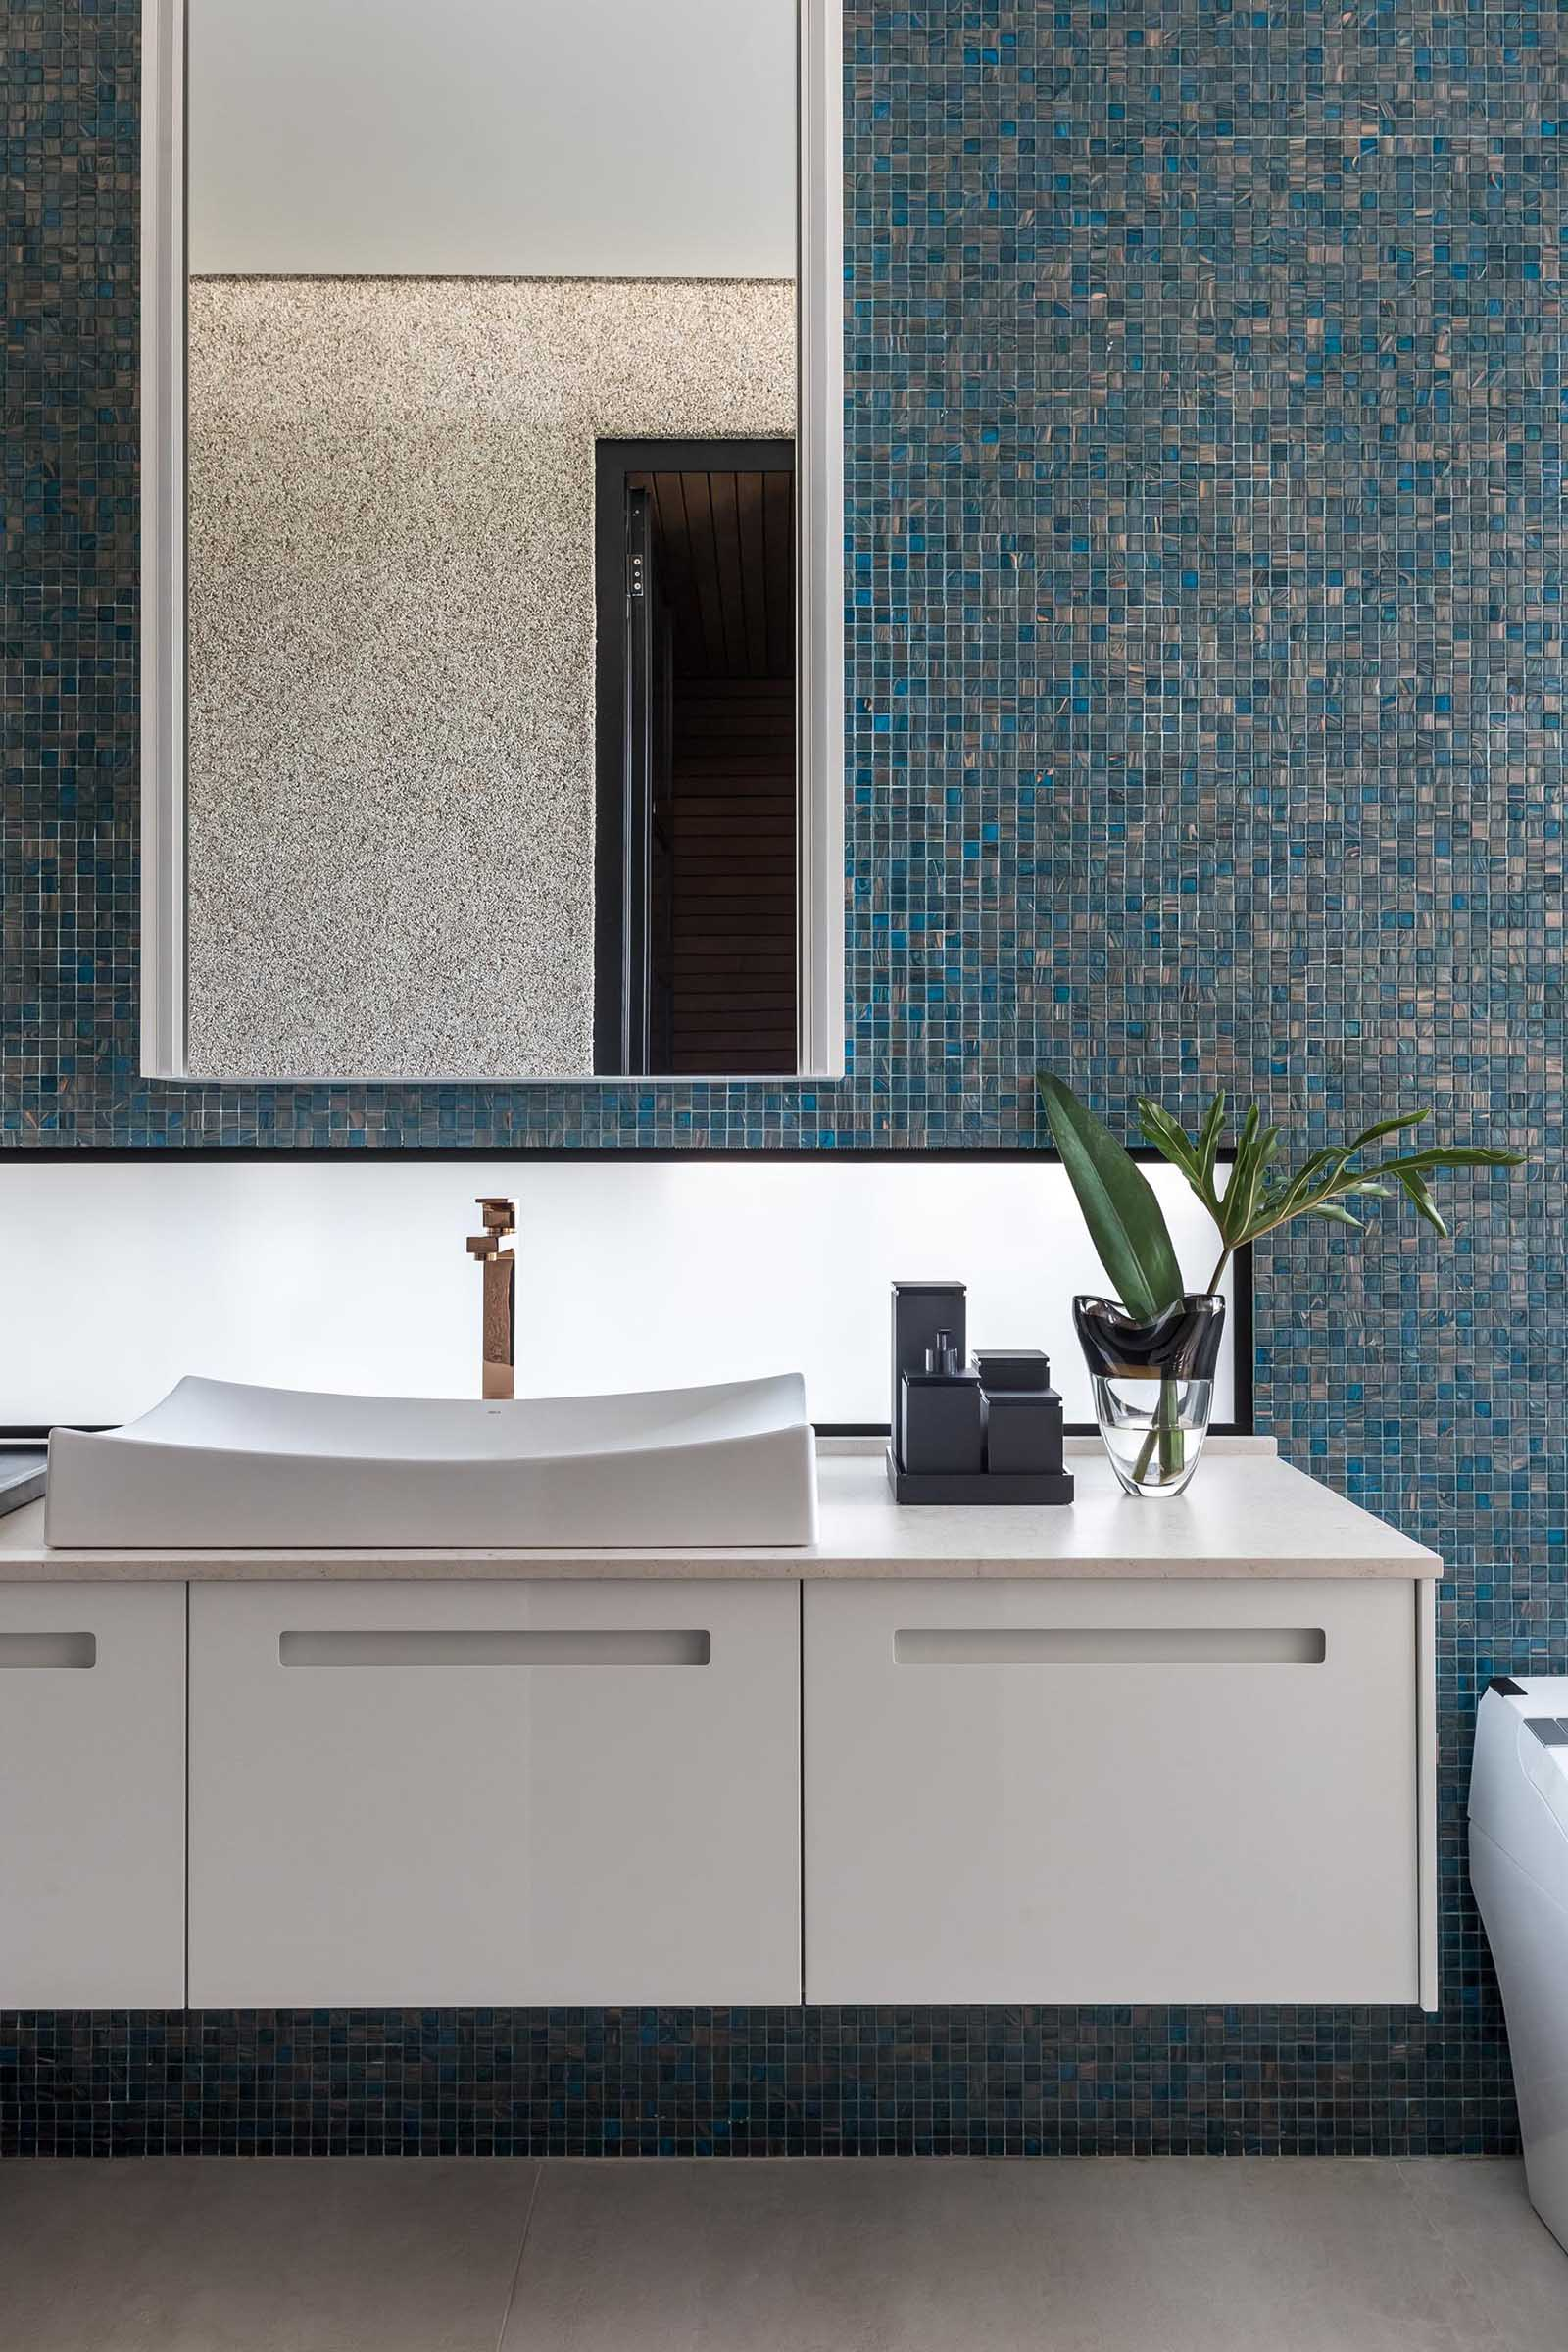 A blue tiled accent wall provides a backdrop for the white vanity and mirror in this modern bathroom.